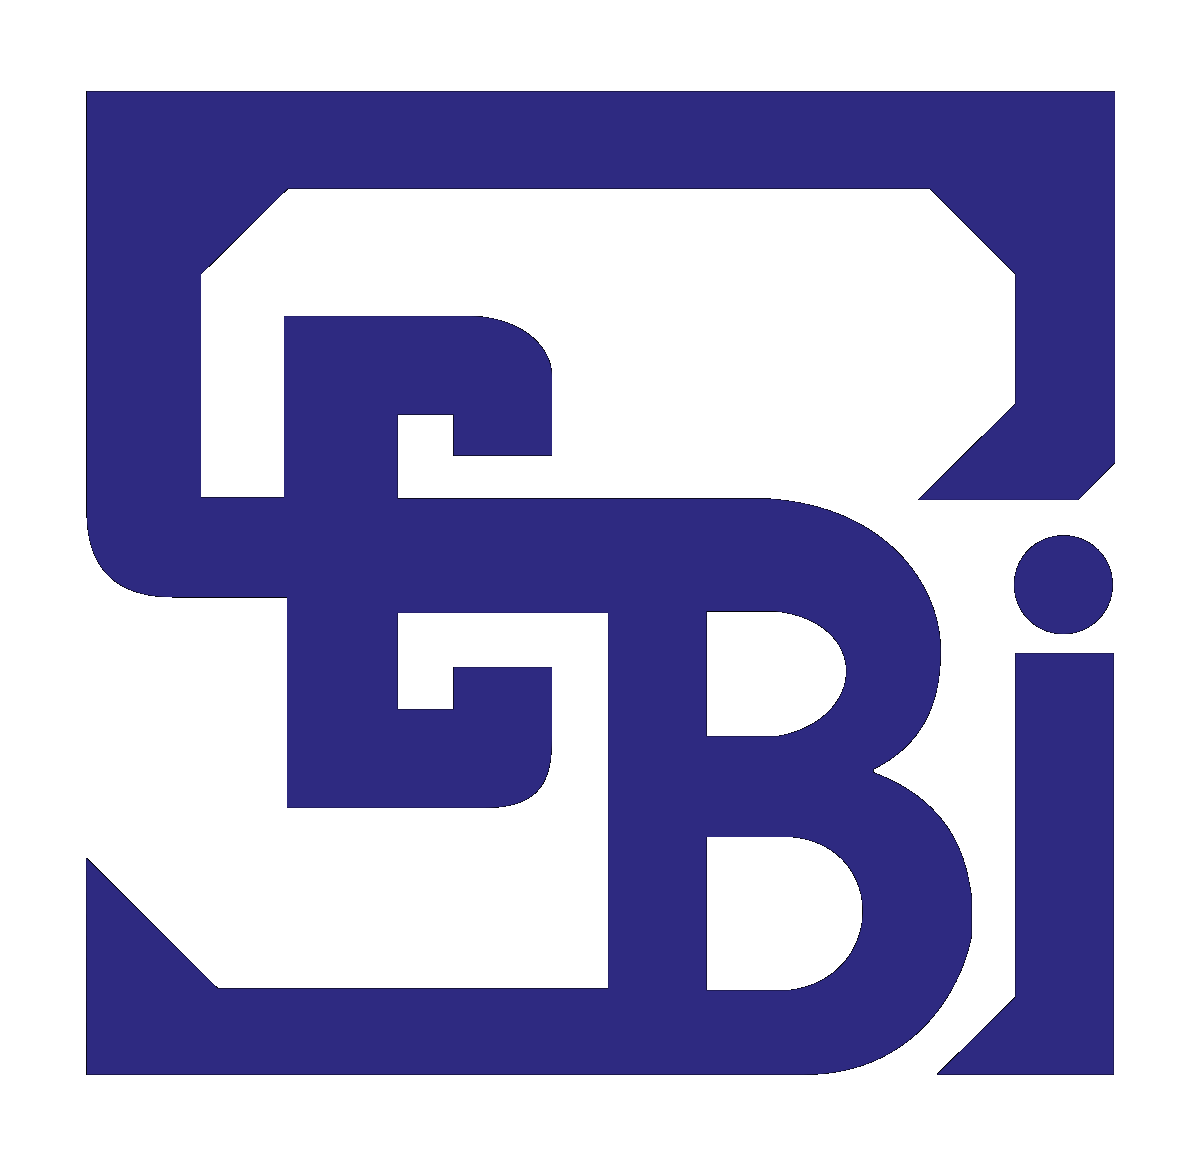 SEBI Clarification in case of Transfer of securities held in physical mode from April 2019